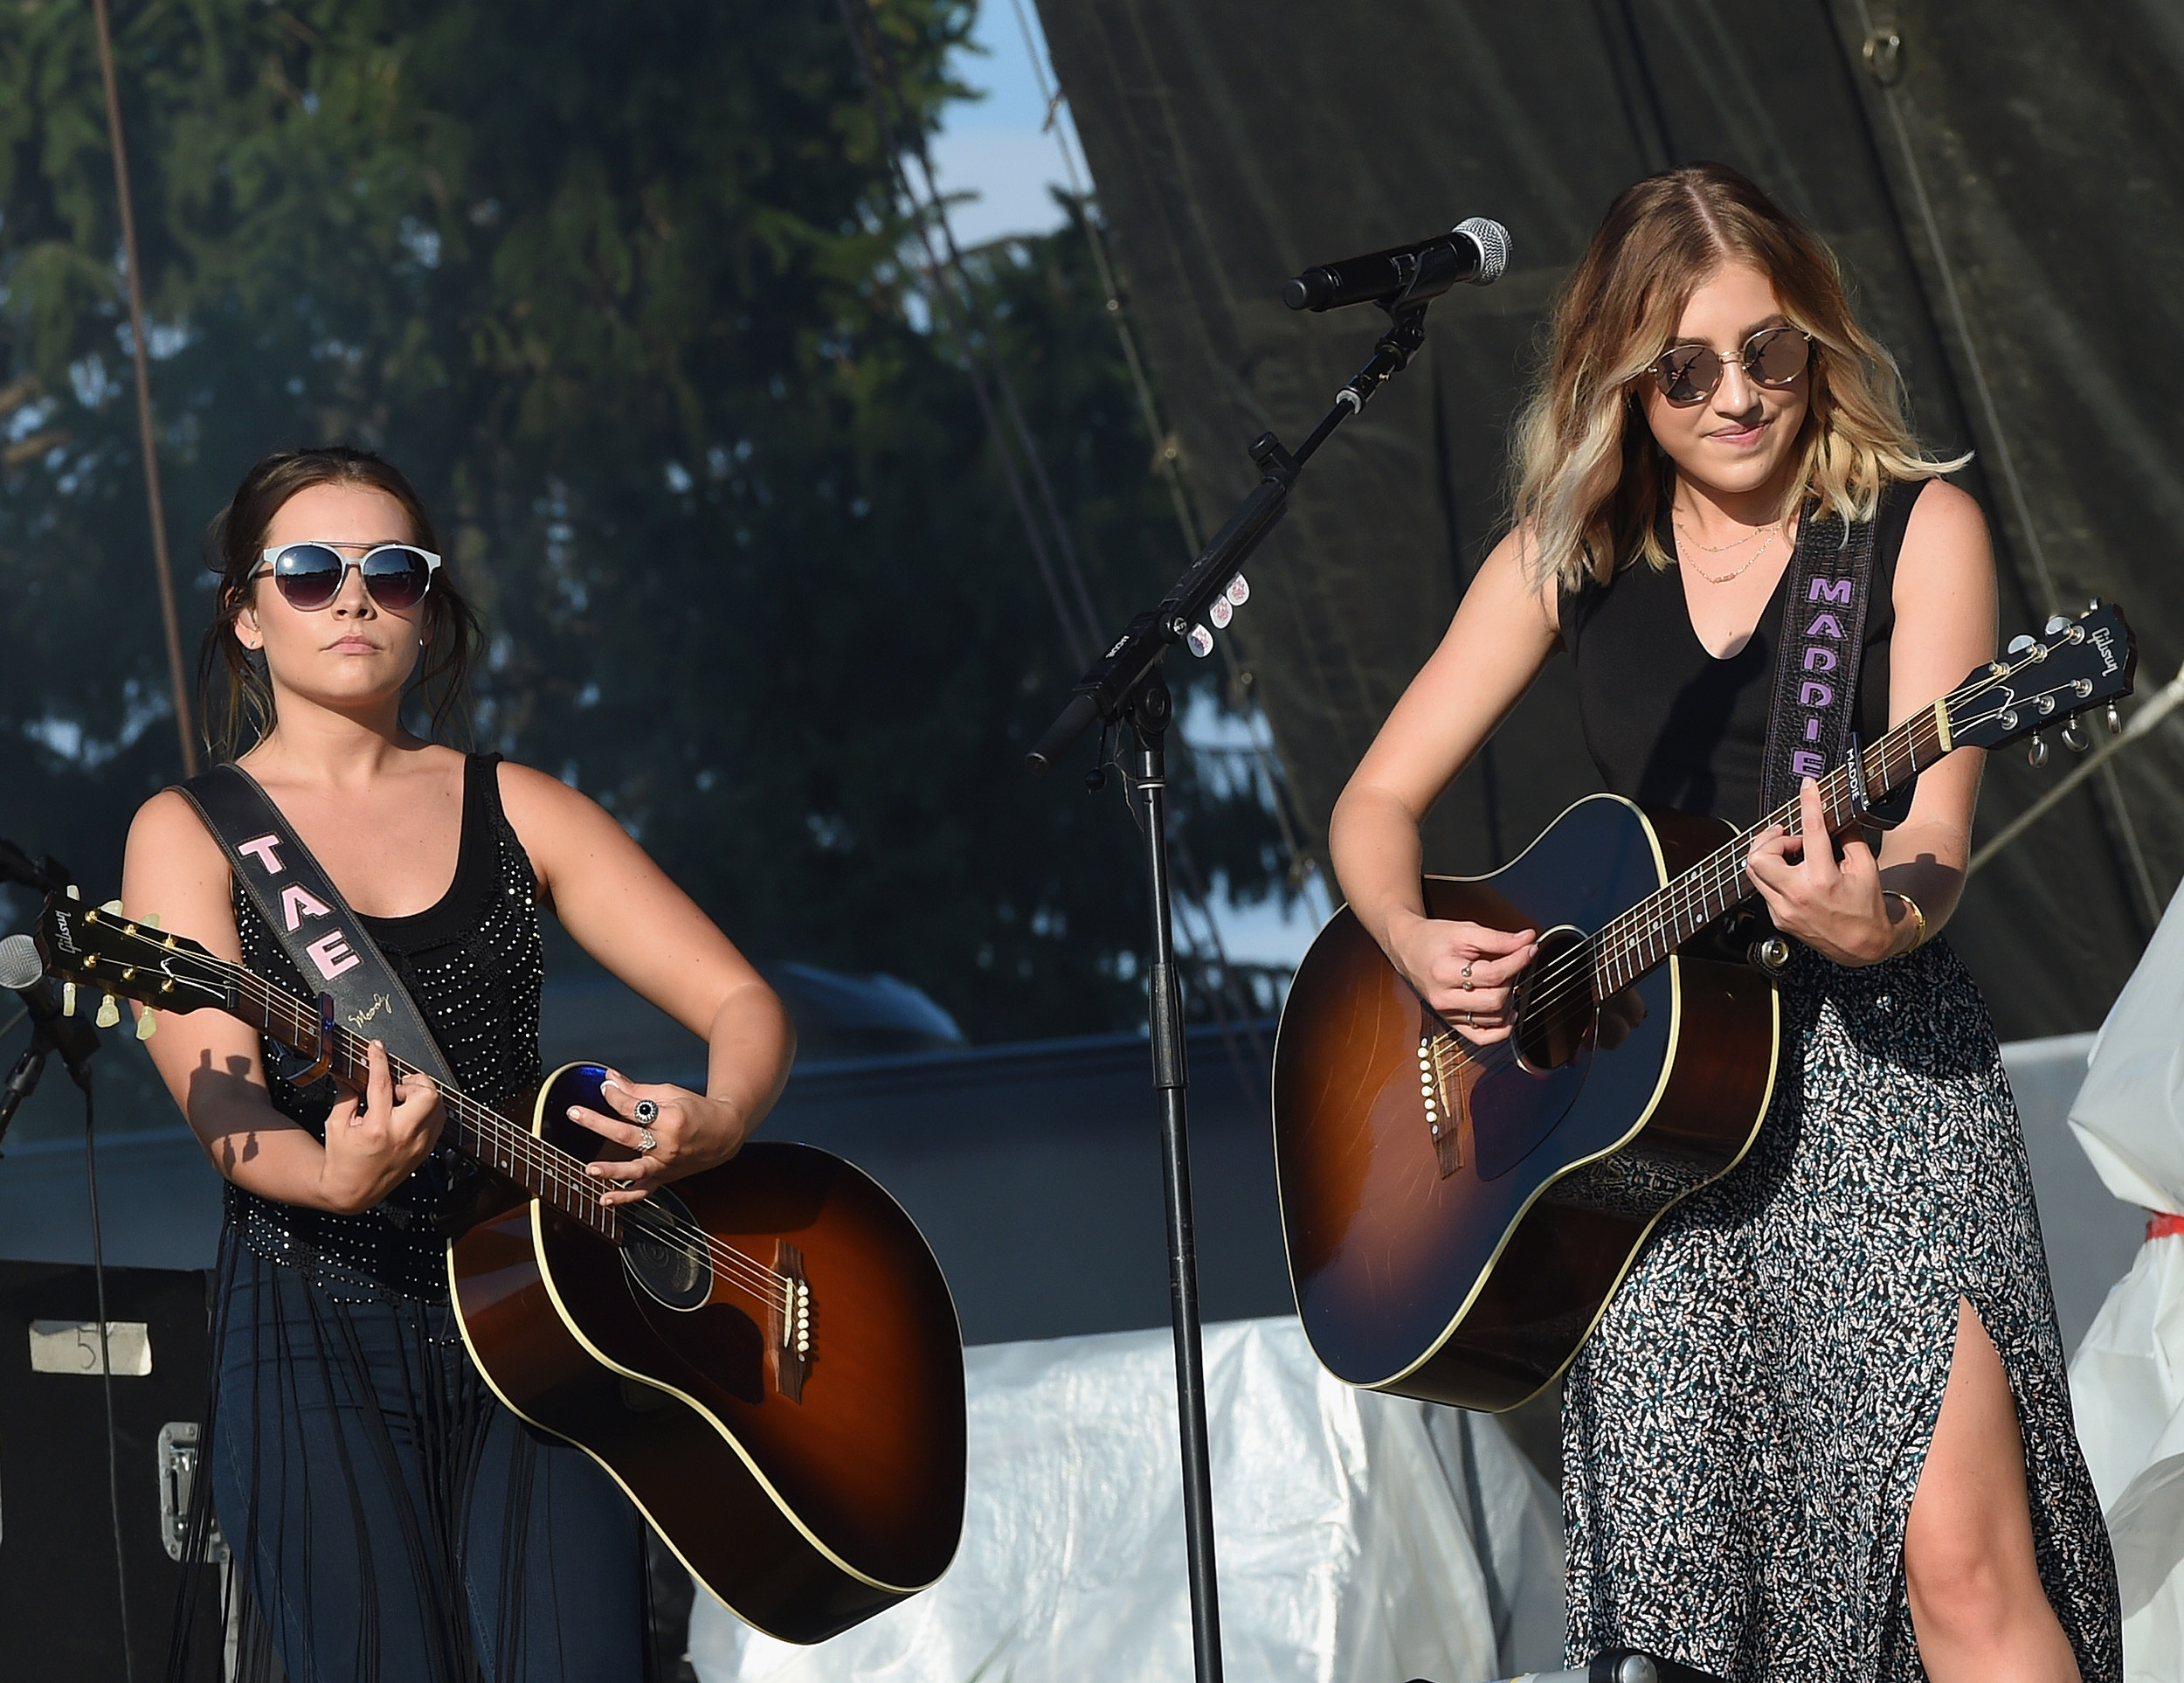 Maddie & Tae's Tae Dye Says Co-Writing With Fiance Josh Kerr 'Just Feels Natural'